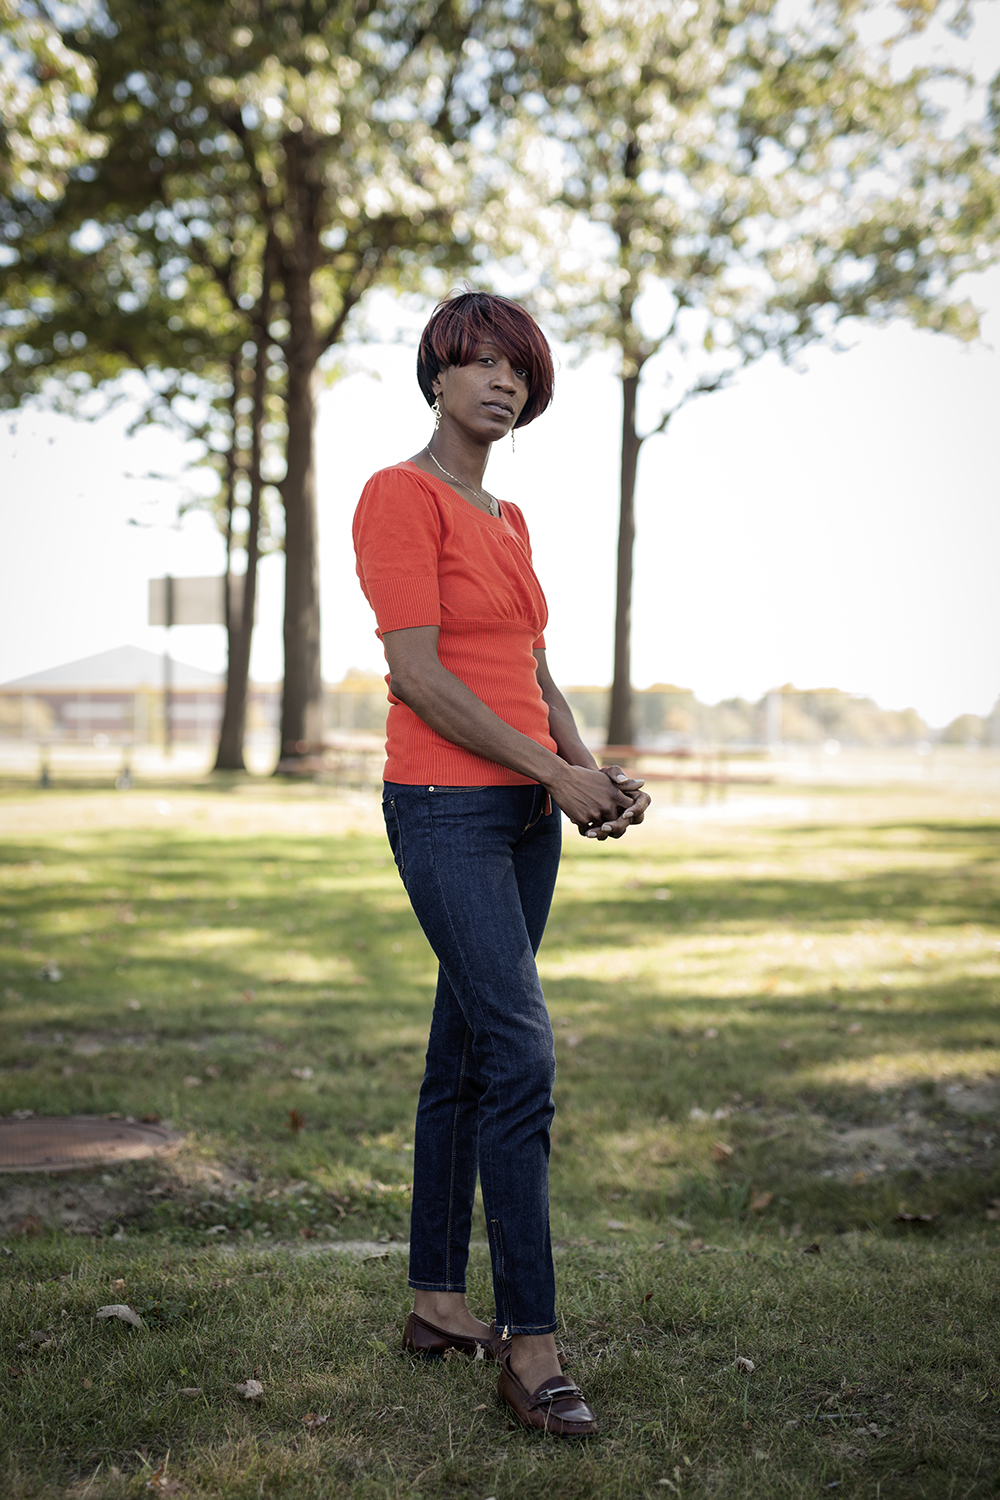 Dearborn, MI - Sept. 23, 2015: Clara Hill has her portrait made at a local park on Wednesday, Sept. 23, 2015 in Dearborn, MI. Hill had been arrested in 1987 by Detroit Police and was harassed, terrorized and assaulted while being questioned about a murder on the west side of Detroit. Tim Galloway for The Intercept